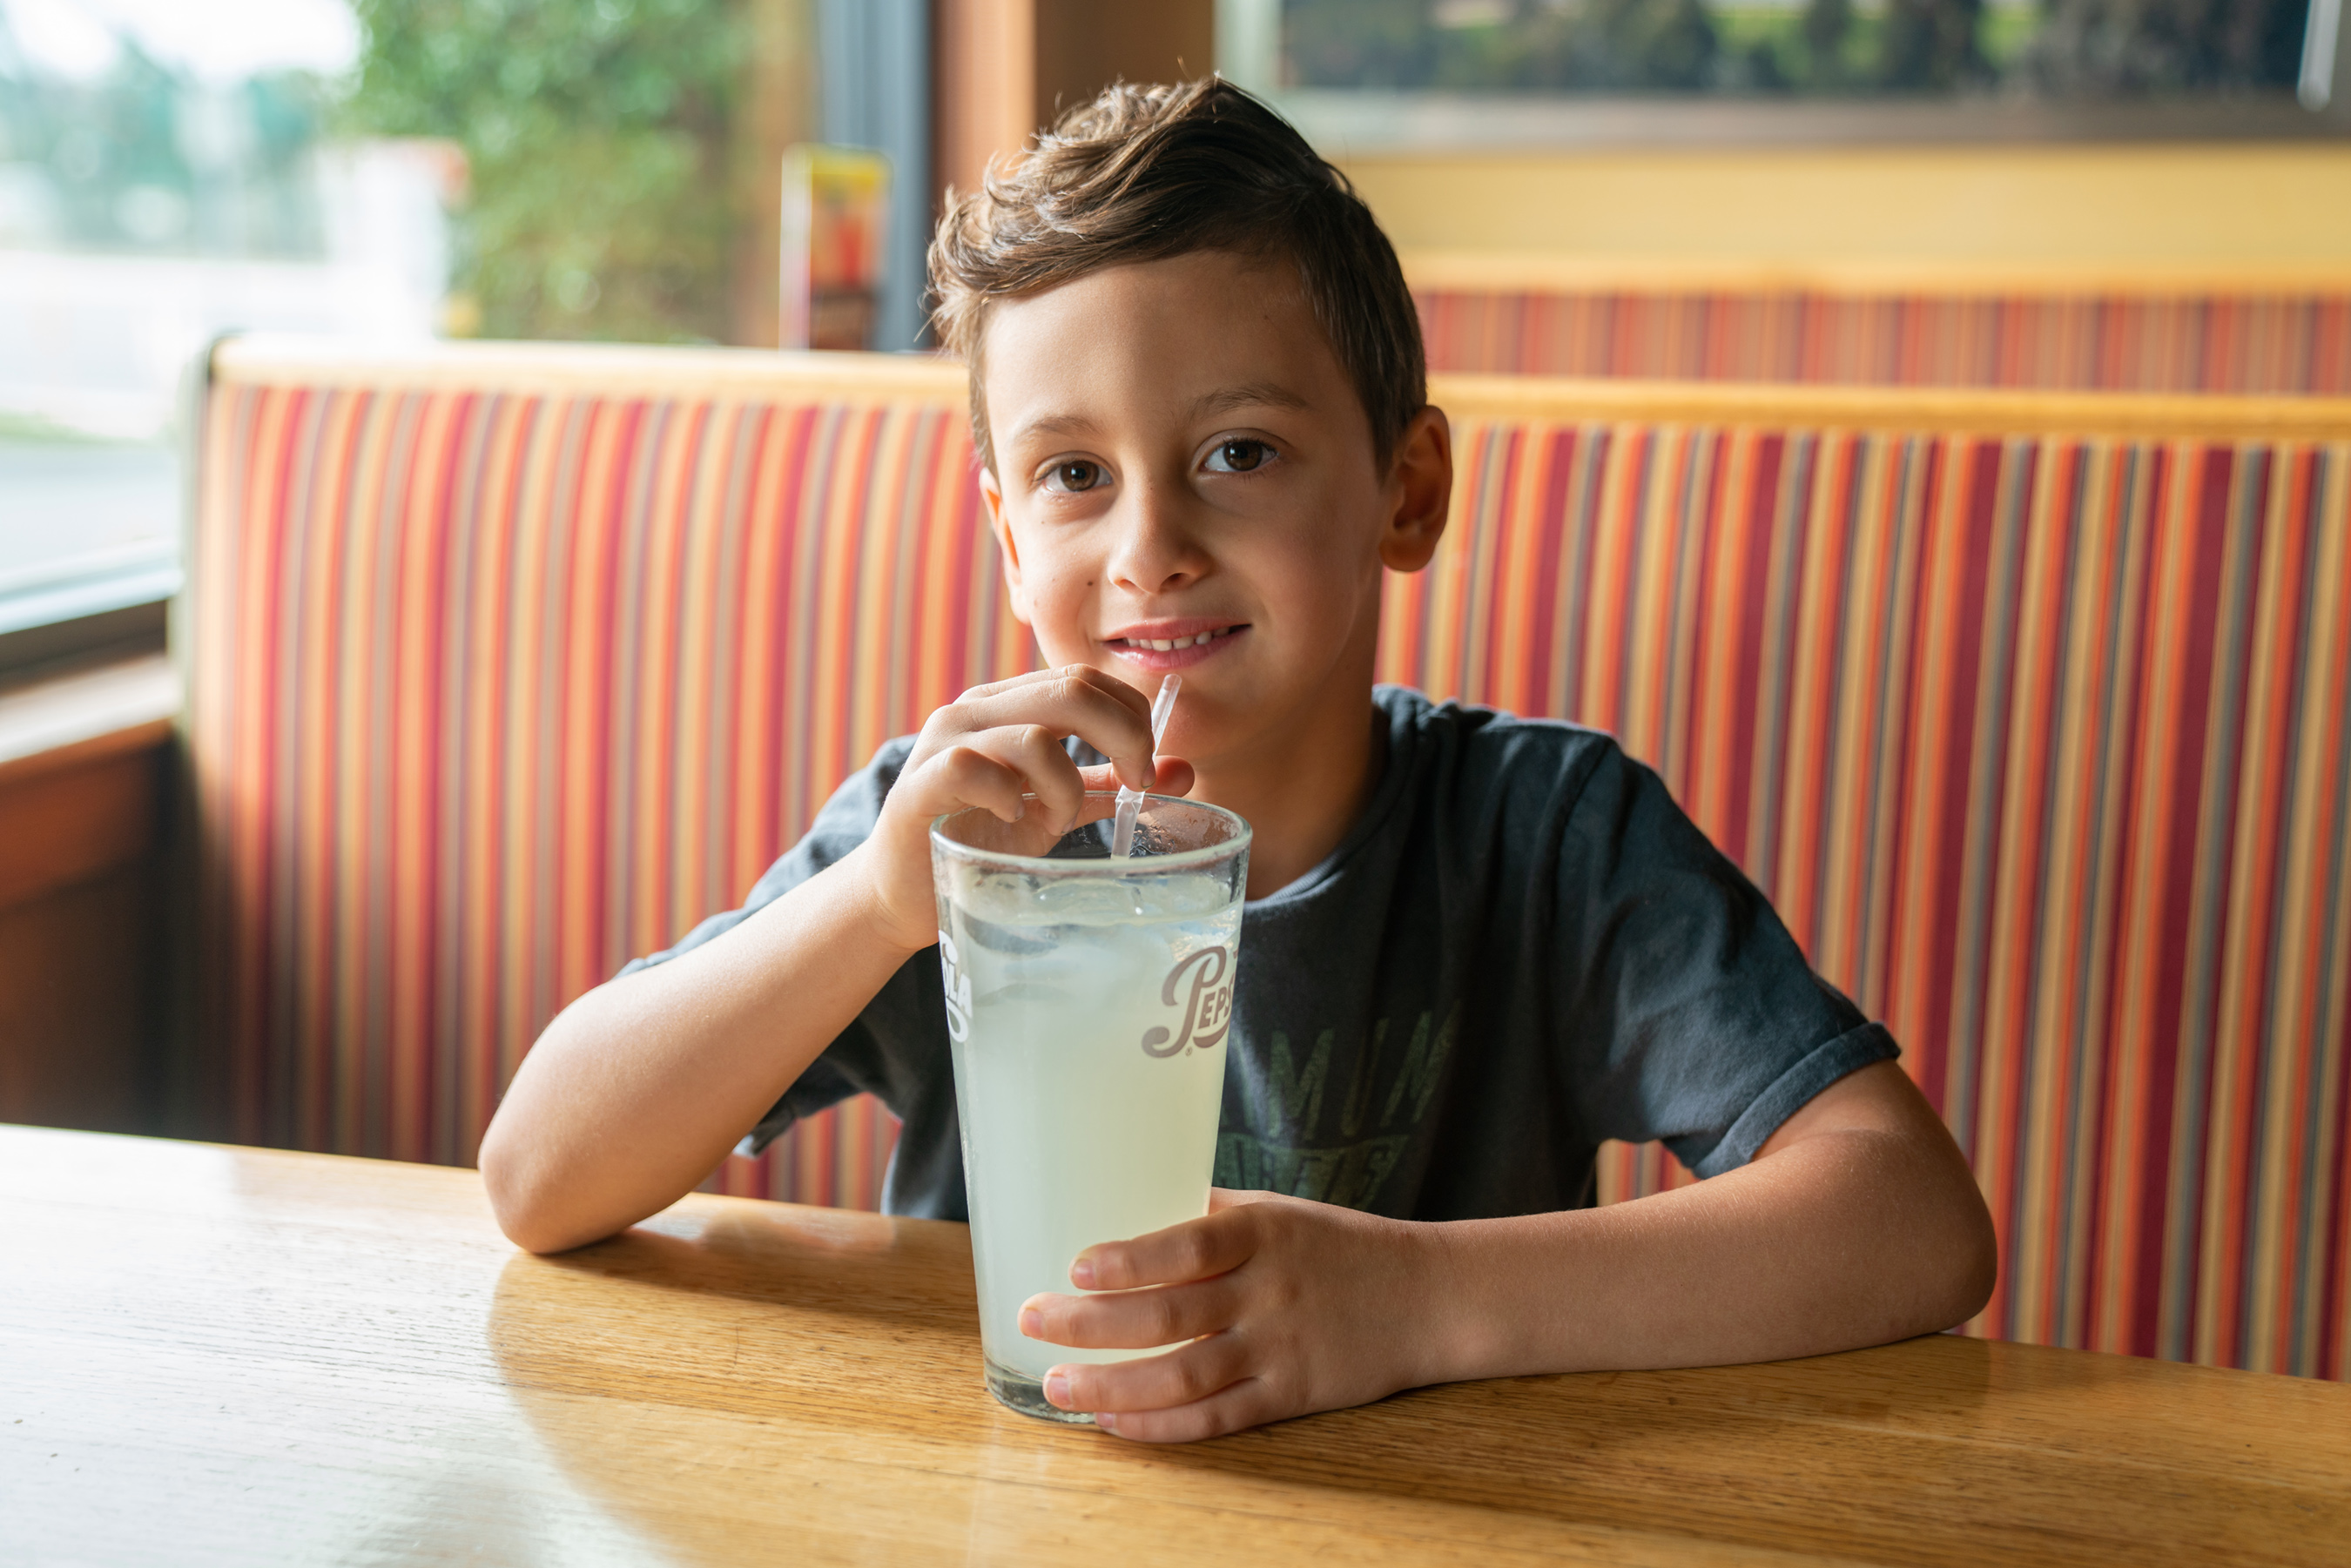 Visit Applebees.com/AlexsLemonade to find participating locations or to donate online to help Alex's Lemonade Stand Foundation put an end to childhood cancer.